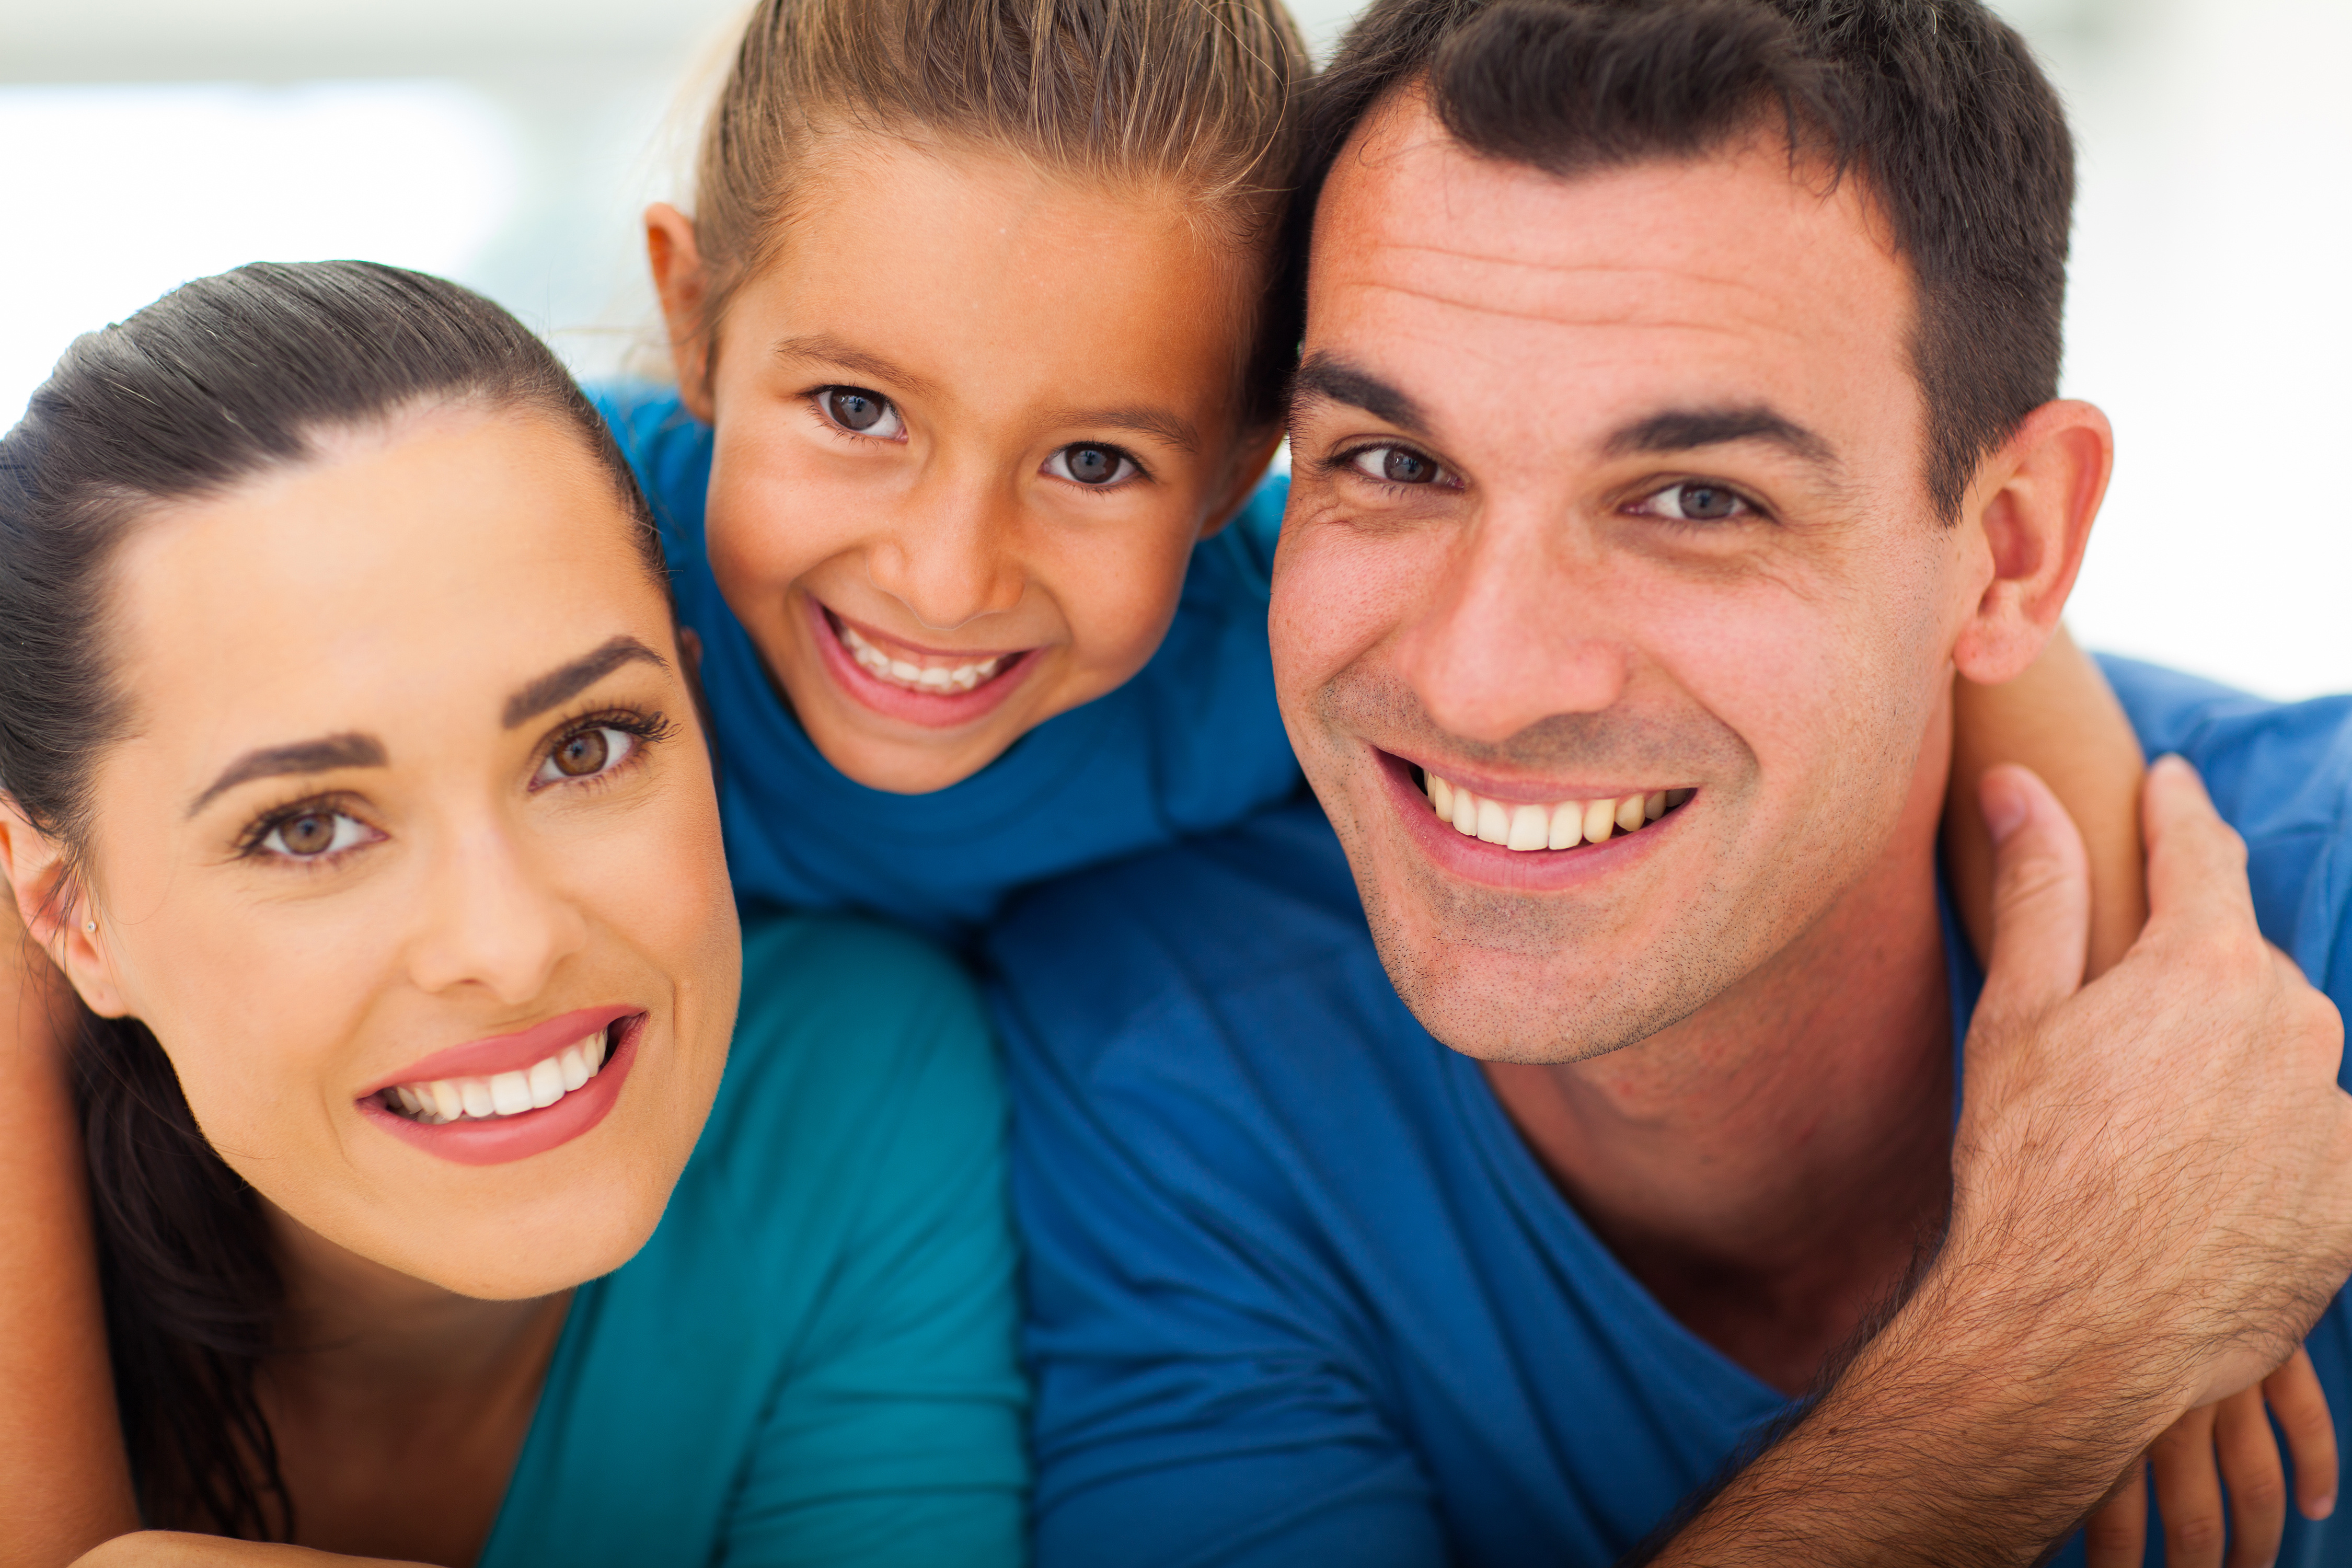 Crest Family Dental | Dentists in 85 Seymour St #1018 - Hartford CT - Reviews - Photos - Phone Number